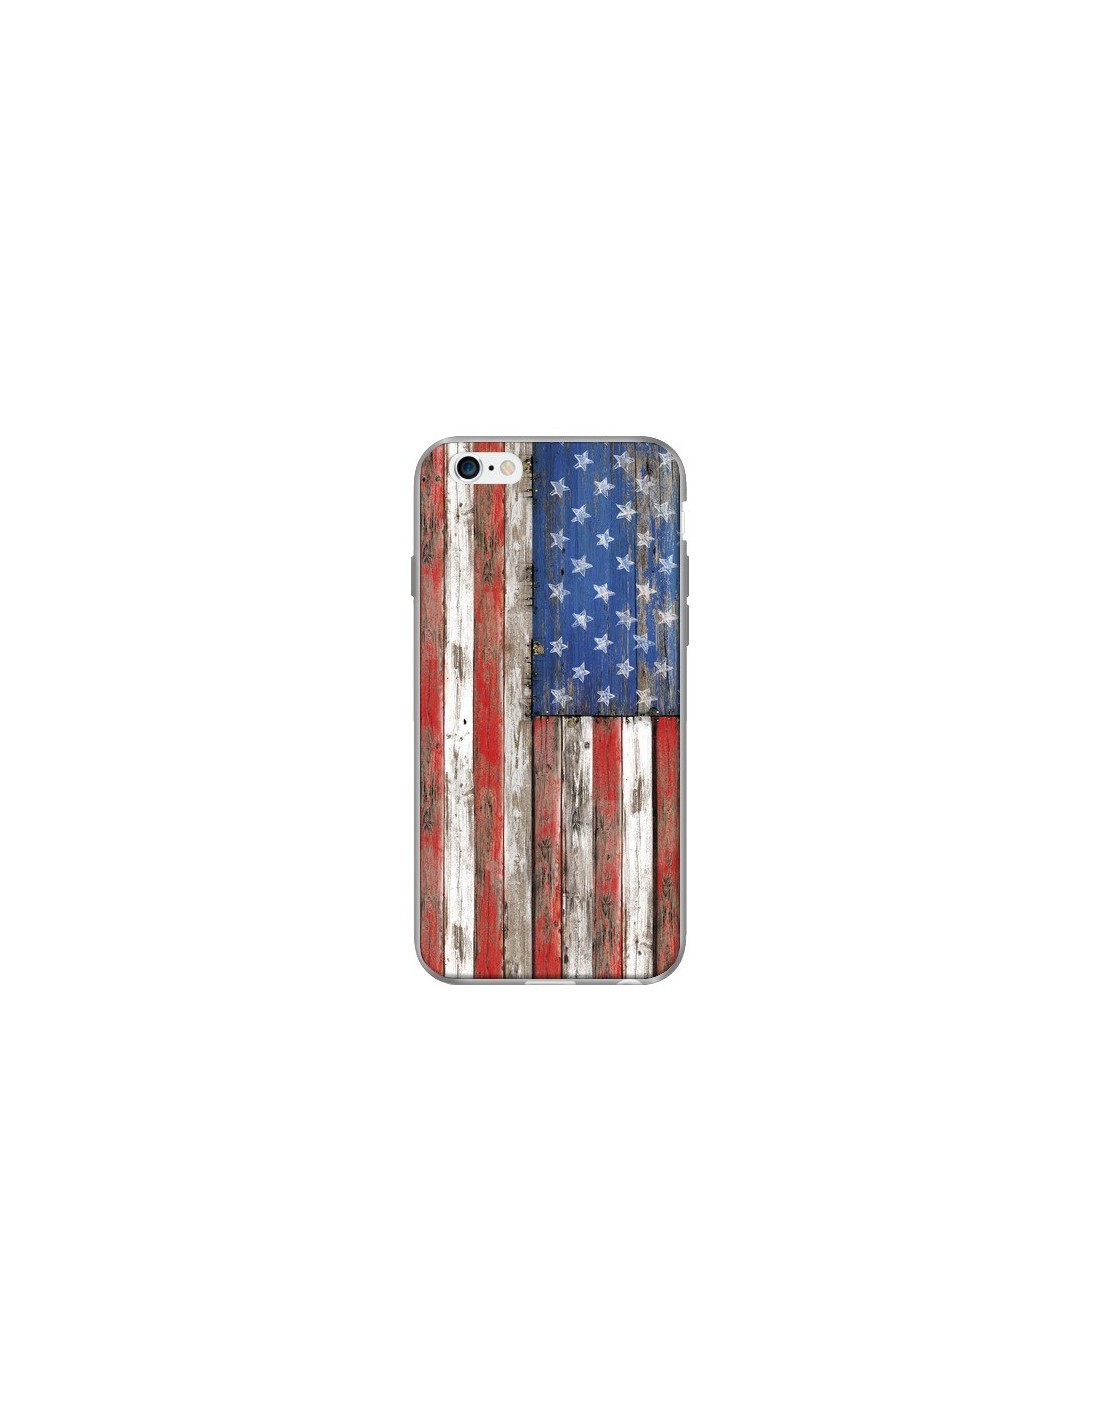 coque drapeau usa vintage bois wood pour iphone 6 et 6s. Black Bedroom Furniture Sets. Home Design Ideas